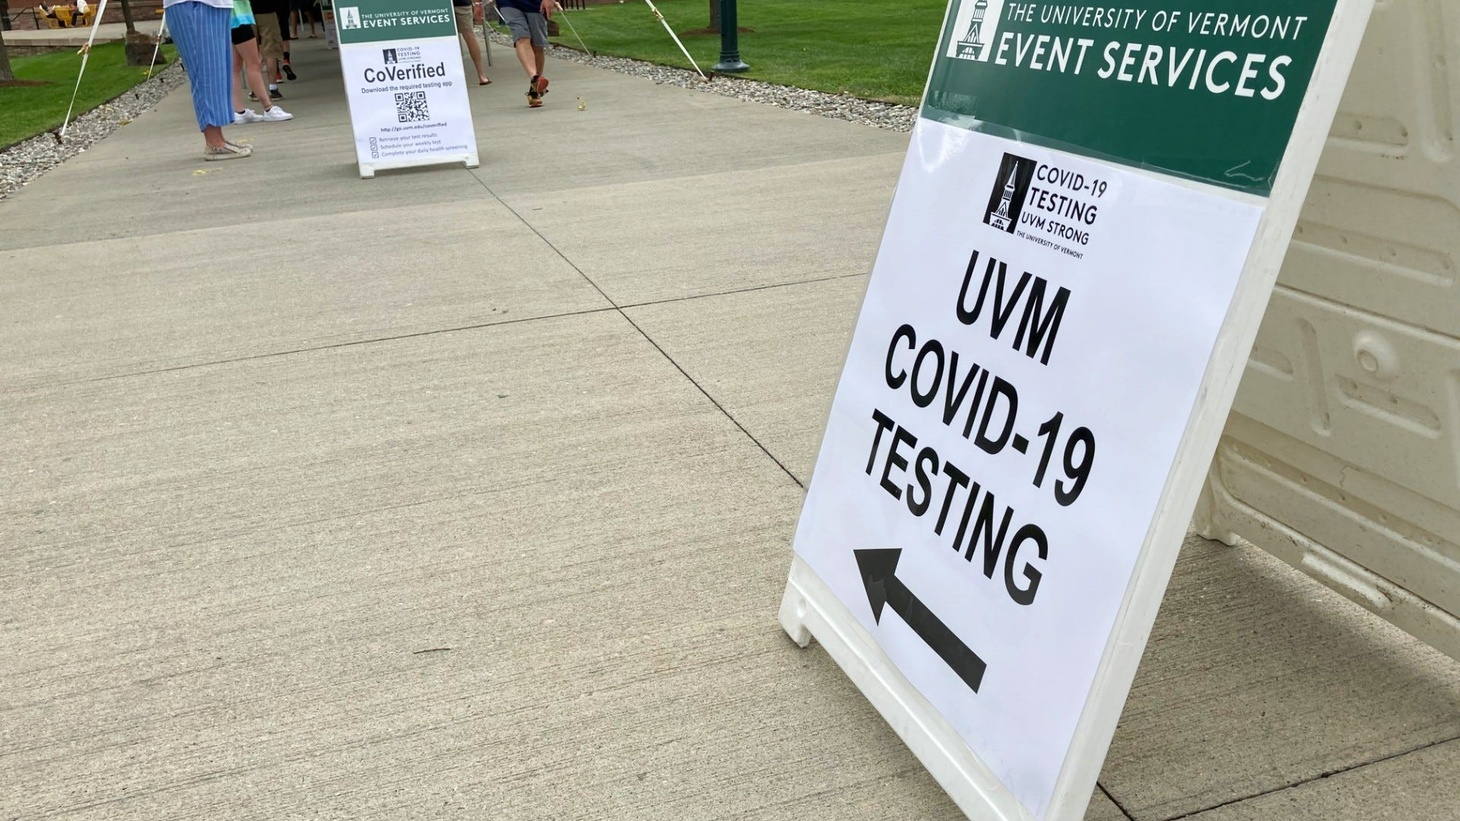 University of Vermont students moving into campus on Aug. 25, 2020 lined up to get a COVID-19 test as part of their first-day responsibilities.